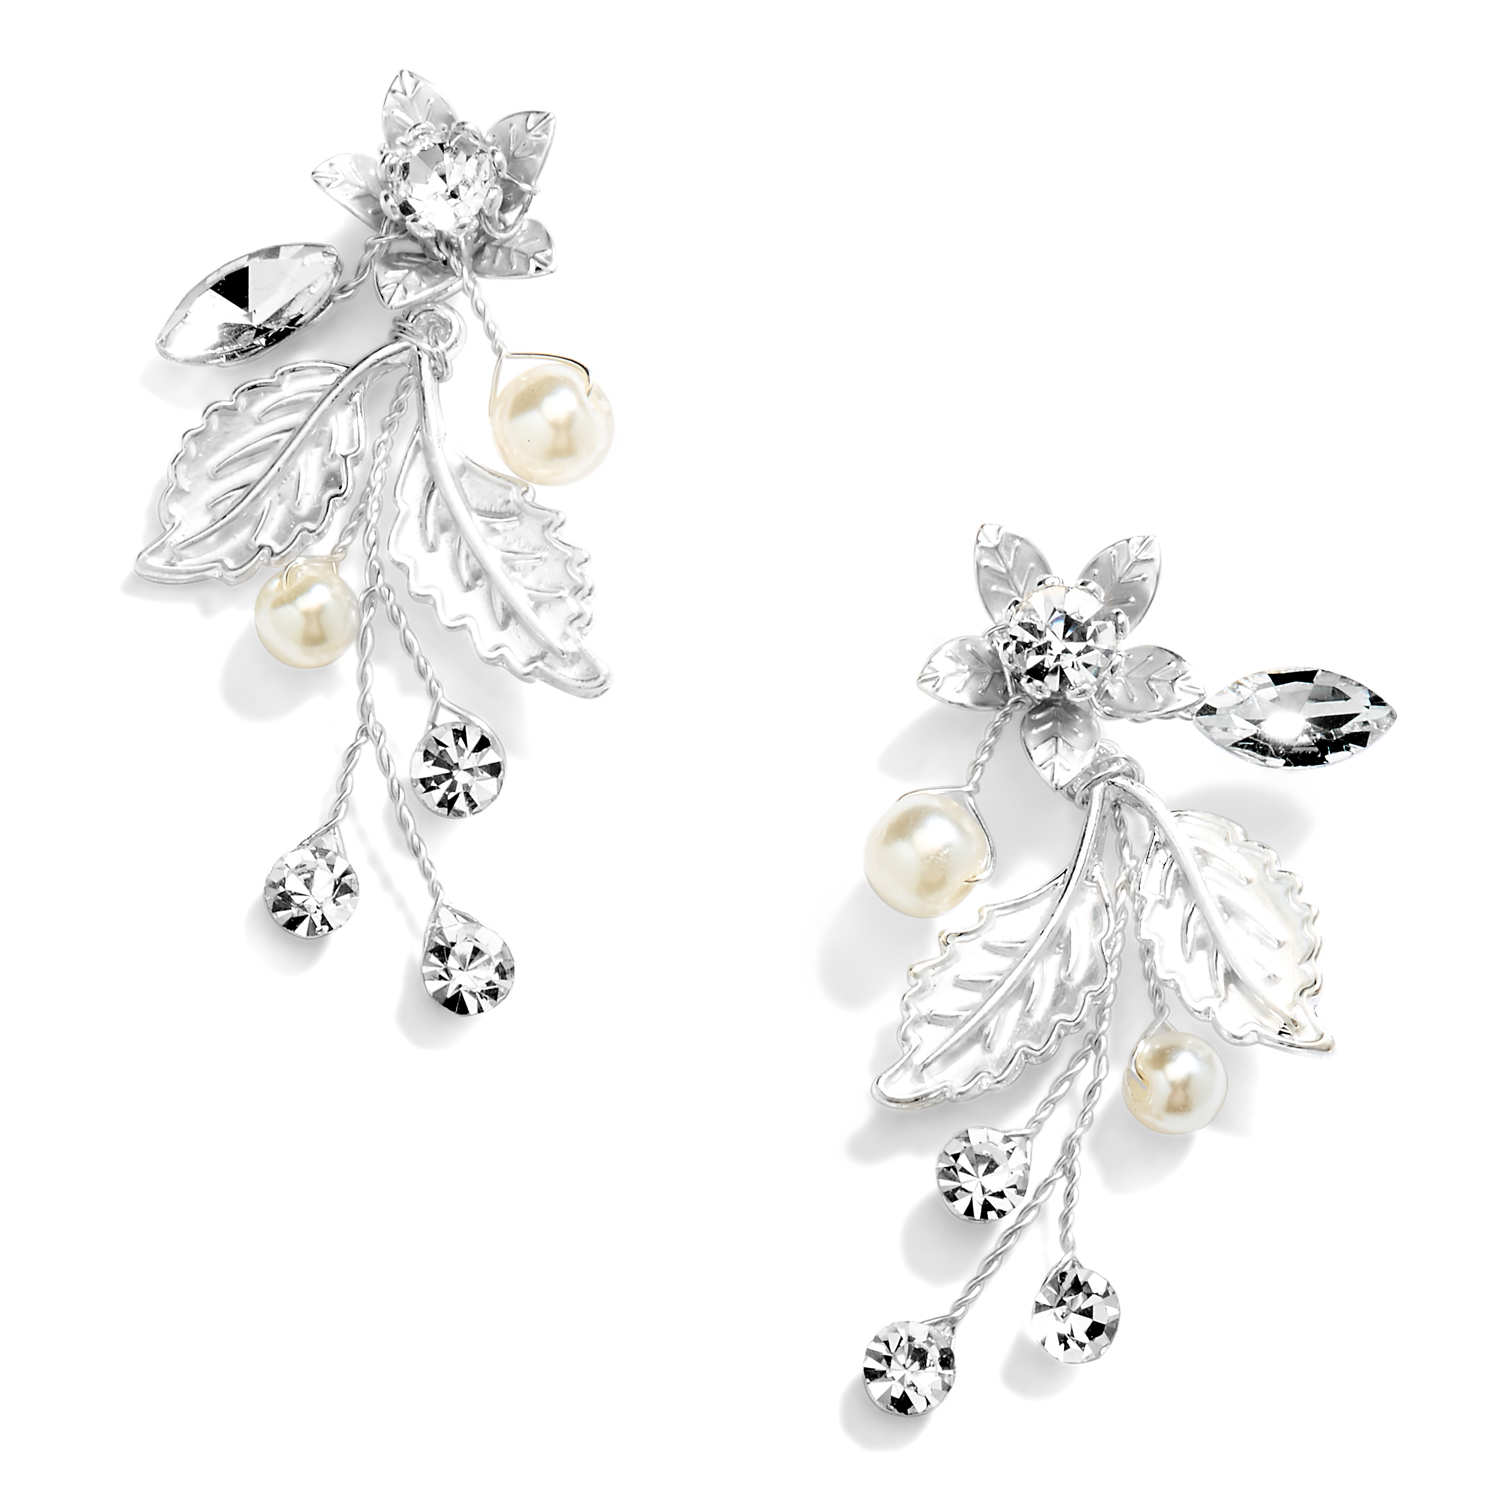 Handmade Floral Wedding Earrings with Austrian Crystals, Matte Silver Leaves and Ivory Pearls<br>4598E-S